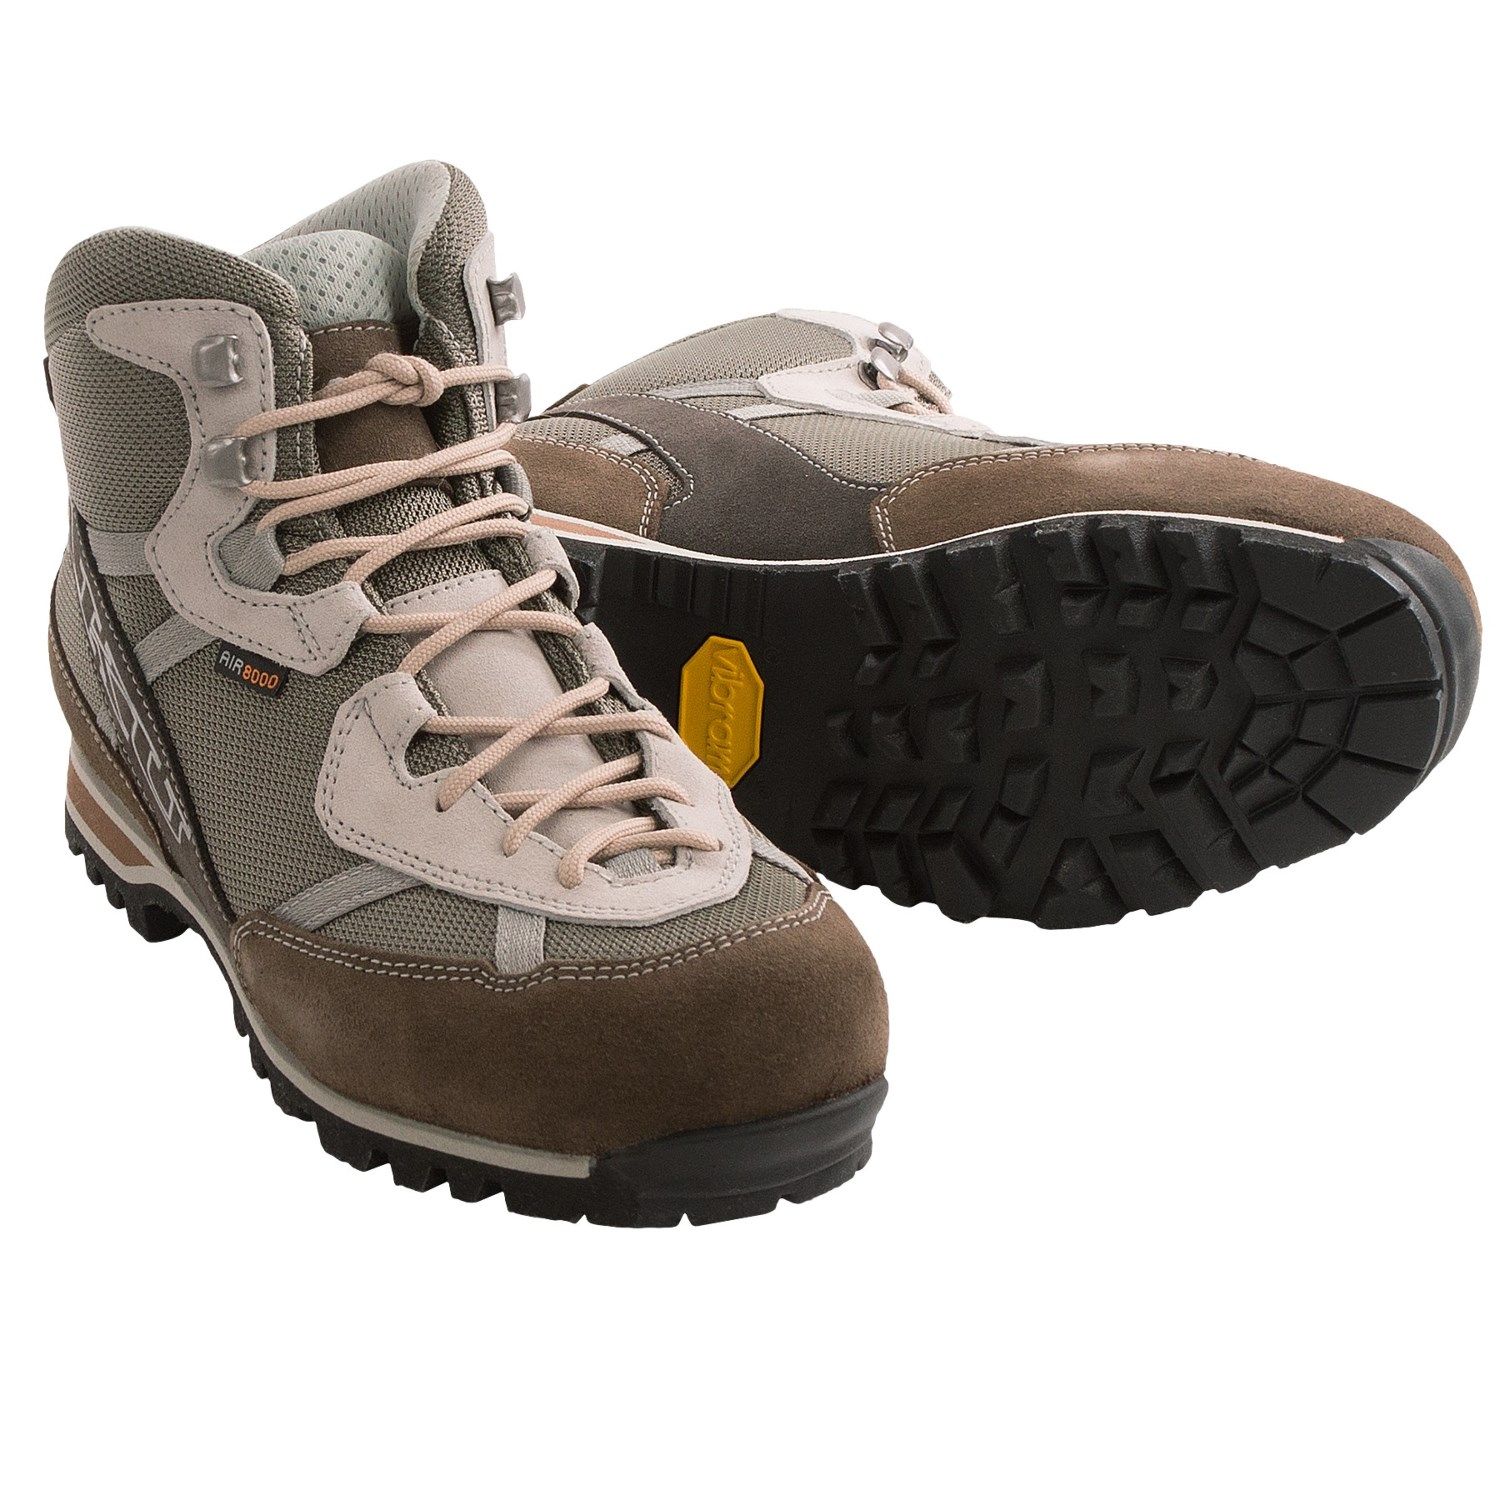 Waterproof? No.. But it doesn't matter because you don't wear socks. The reason you want waterproof hiking boots and shoes is so your socks don't get wet